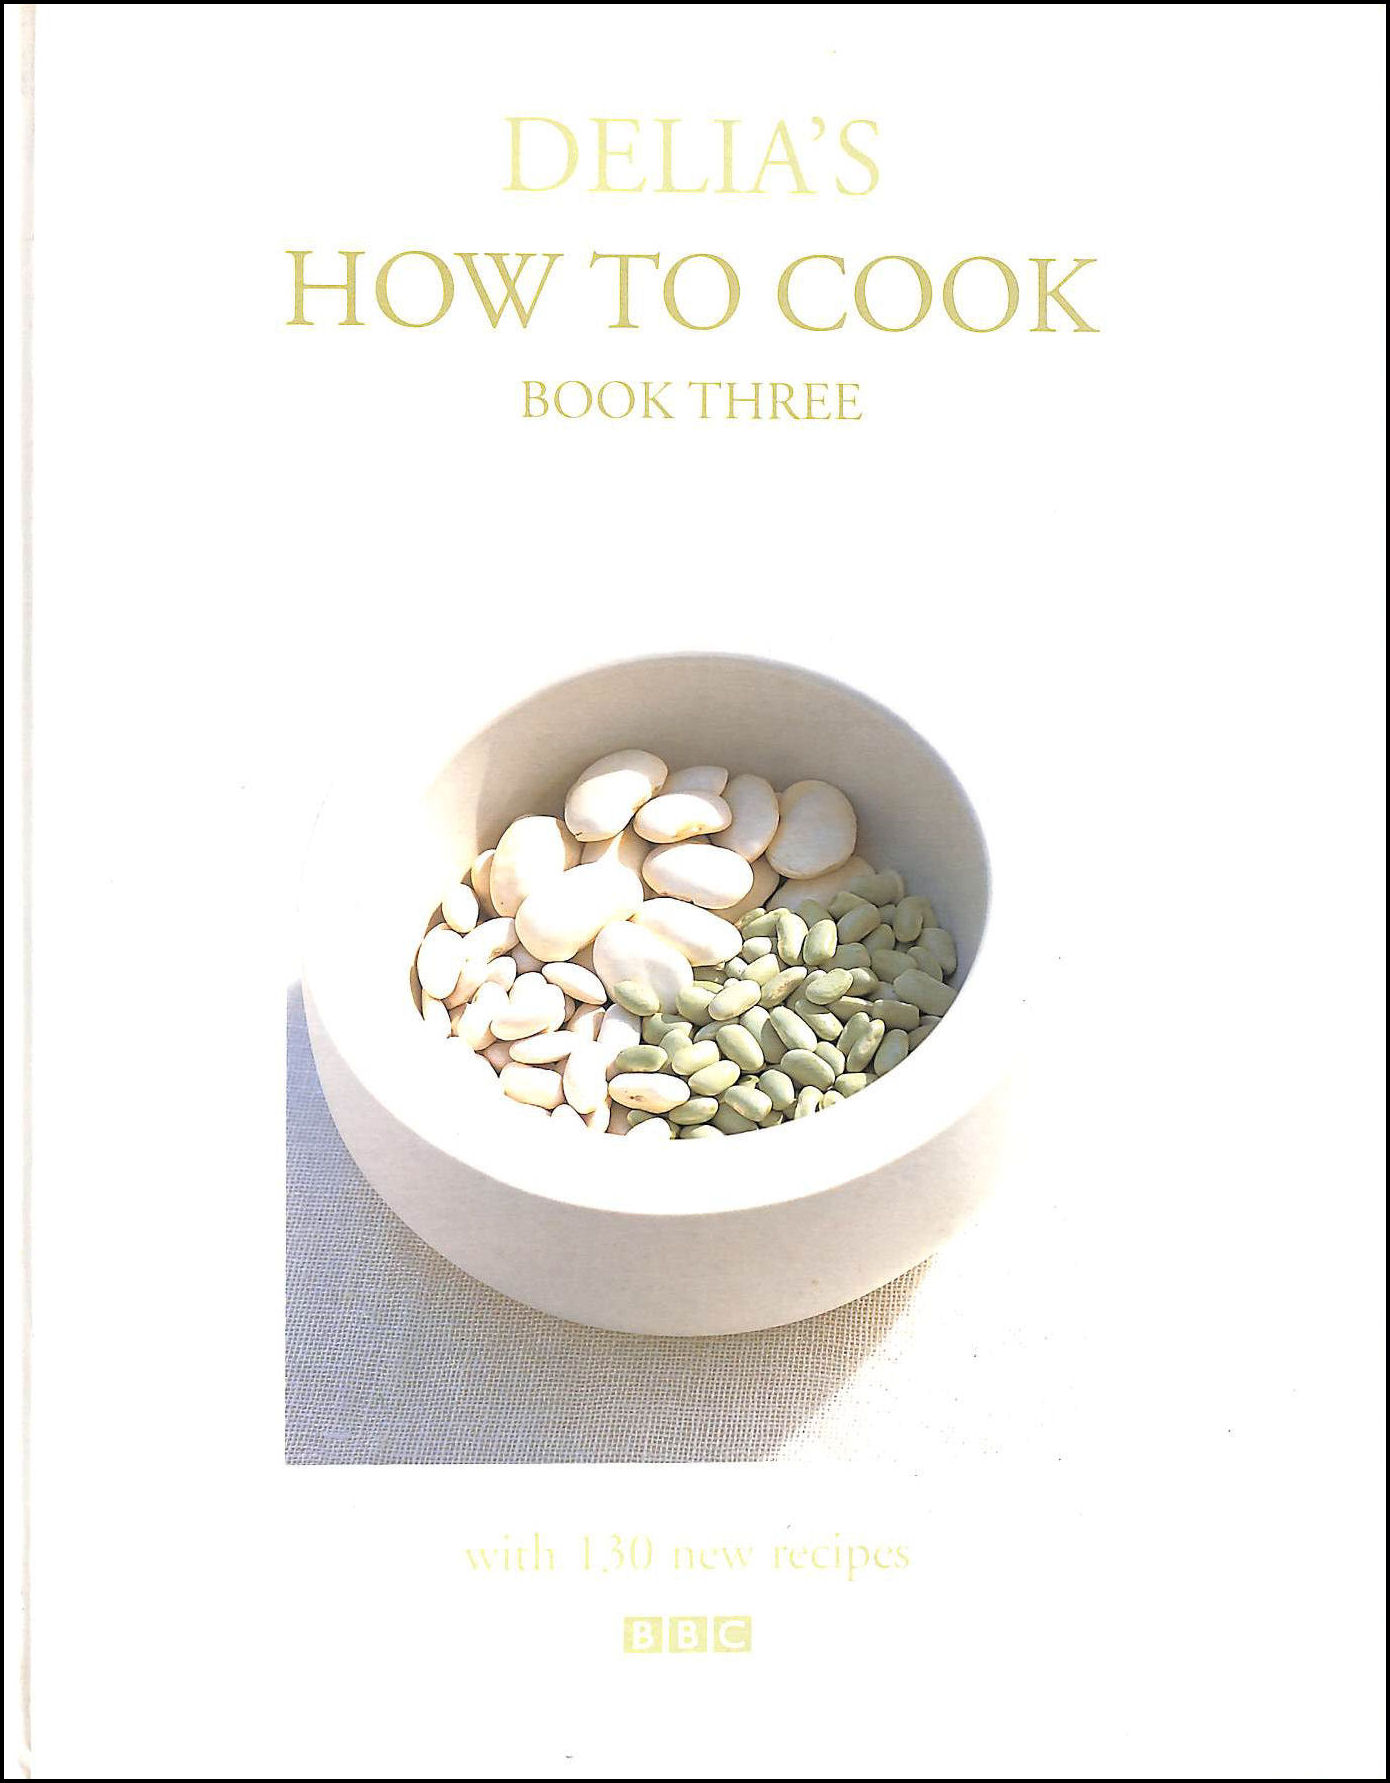 DELIA SMITH; MIKI DUISTERHOF [PHOTOGRAPHER] - Delia's How to Cook Book Three